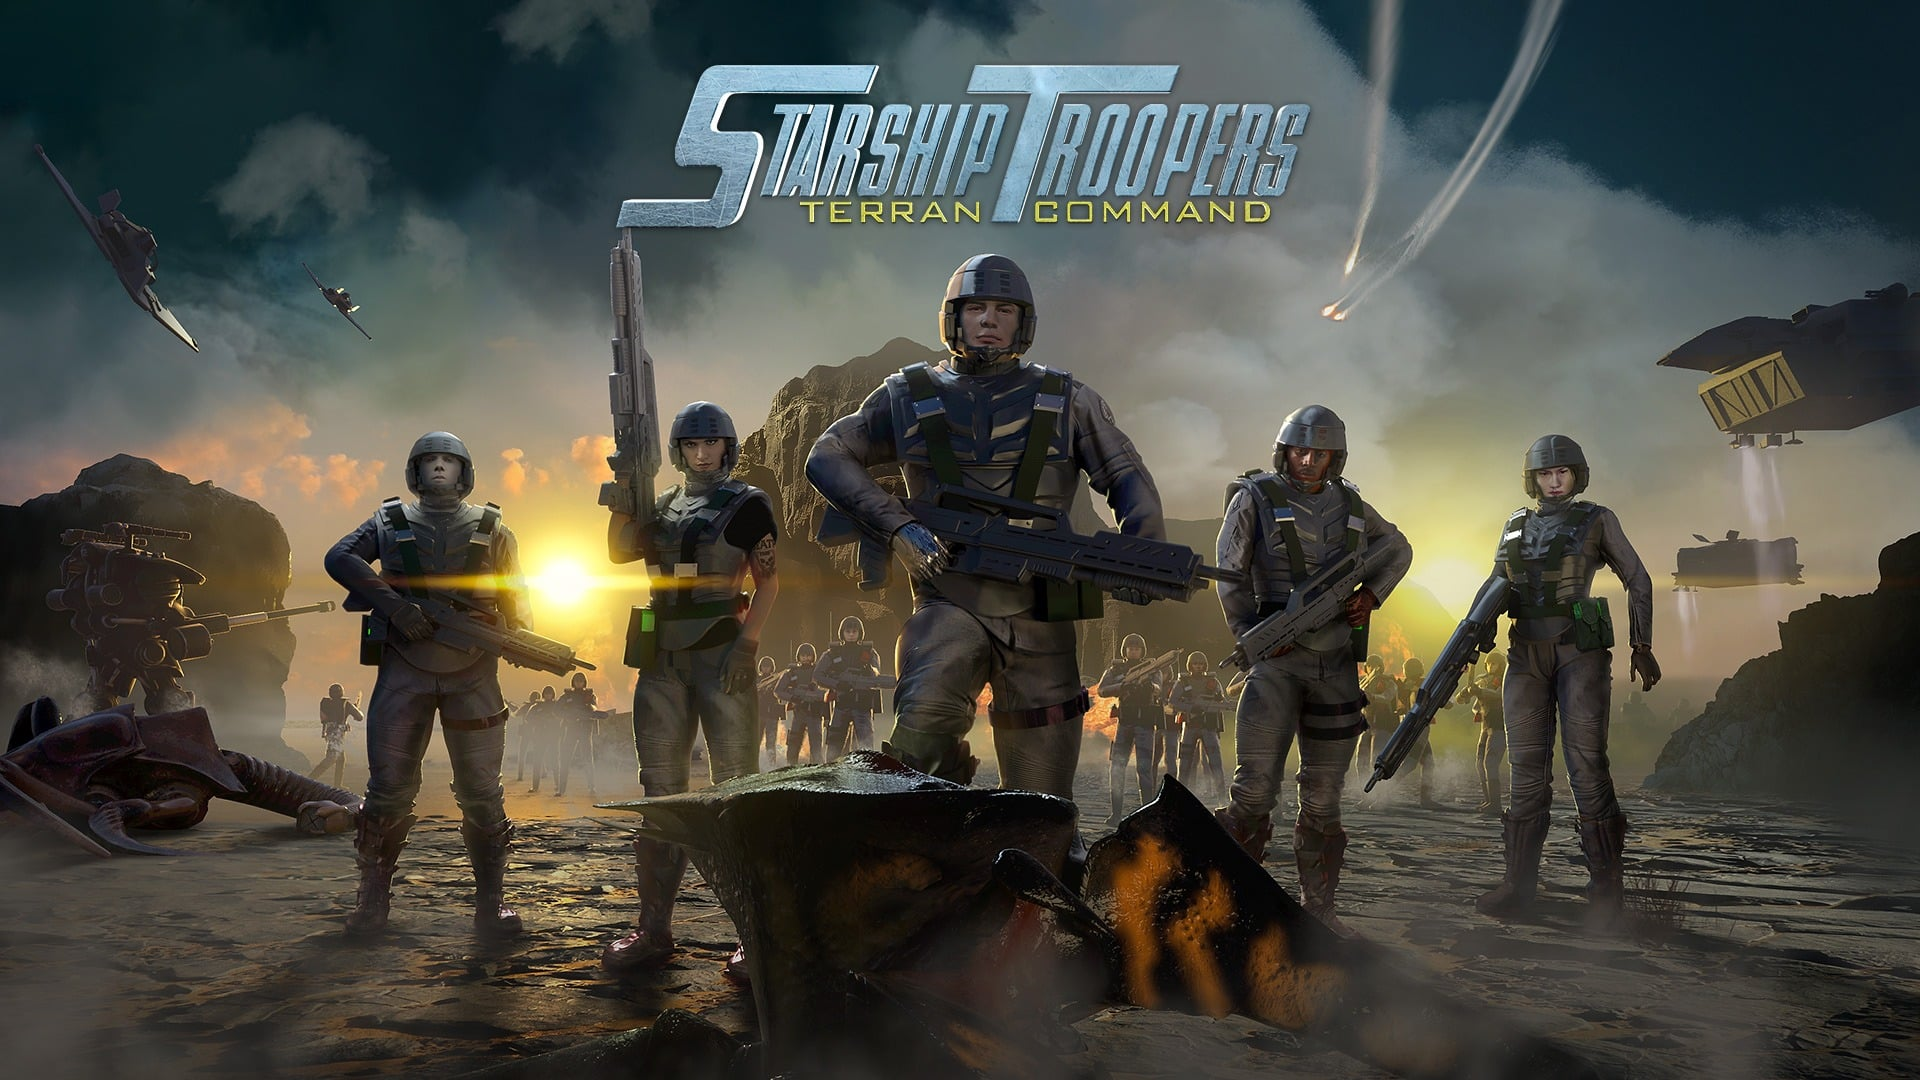 Starship Troopers: Terran Command Sony Pictures Consumer Products Slitherine